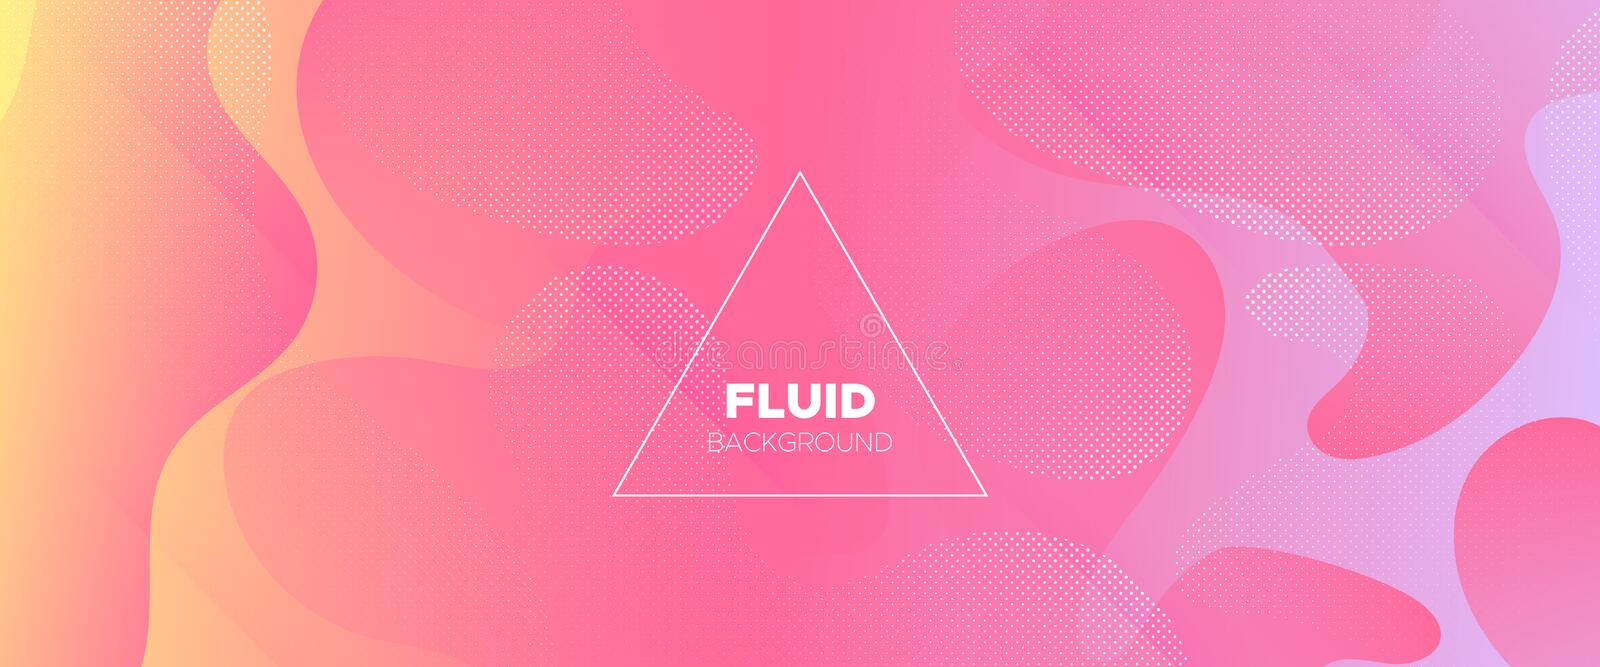 Dotted Flow Background. Rainbow Abstract Liquid. Trendy Dynamic Wallpaper. Vector Brochure. Fluid Background. Pink 3d Liquid Shape. Modern Geometric Poster stock illustration